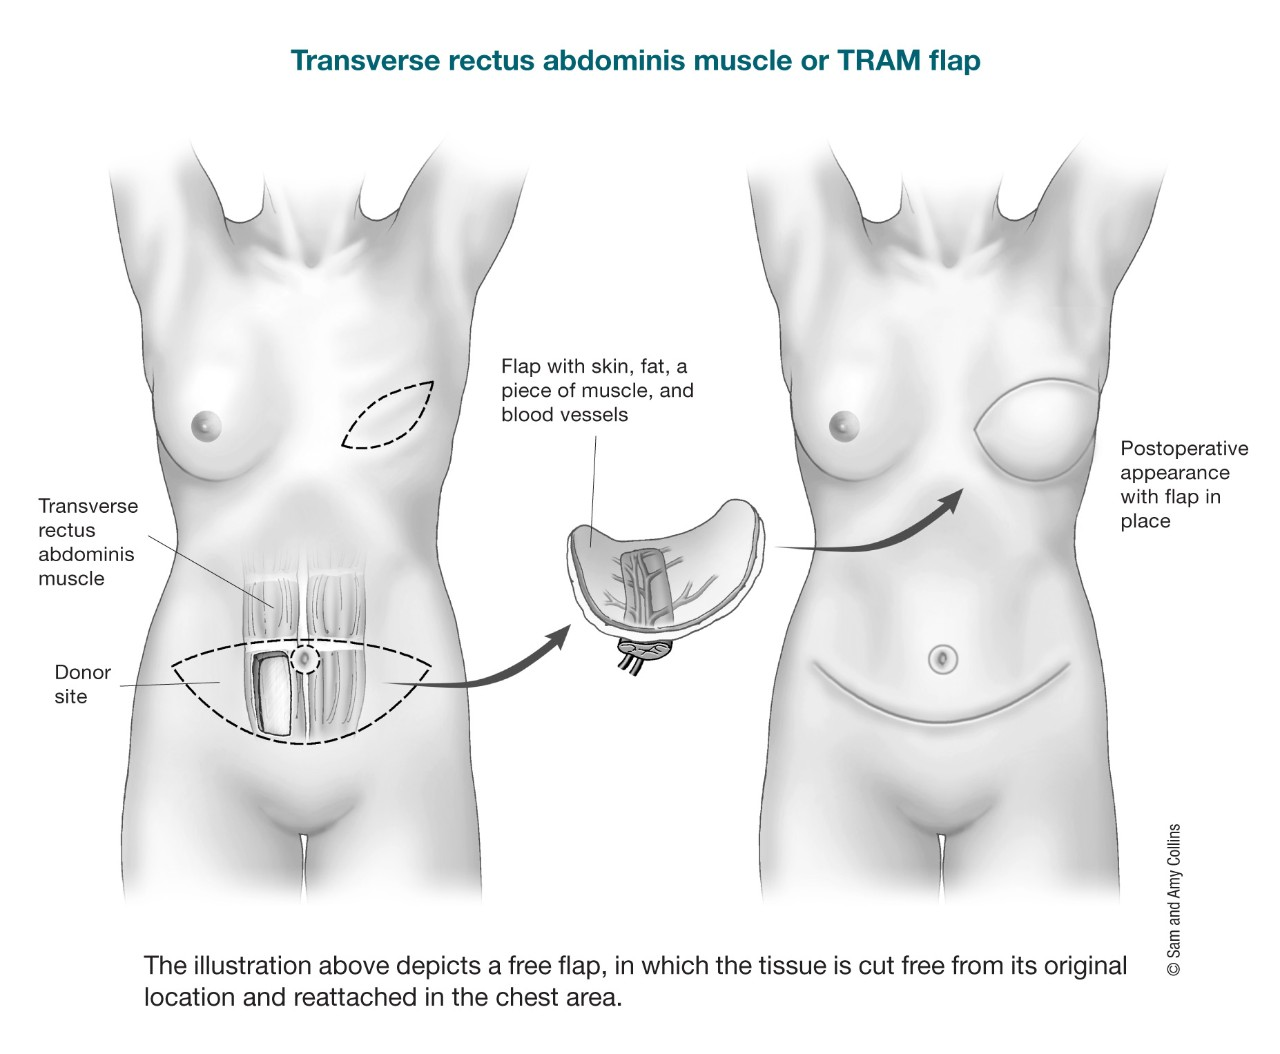 illustration depicting a free flap in which the tissue is cut free from its original location and reattached in the chest area